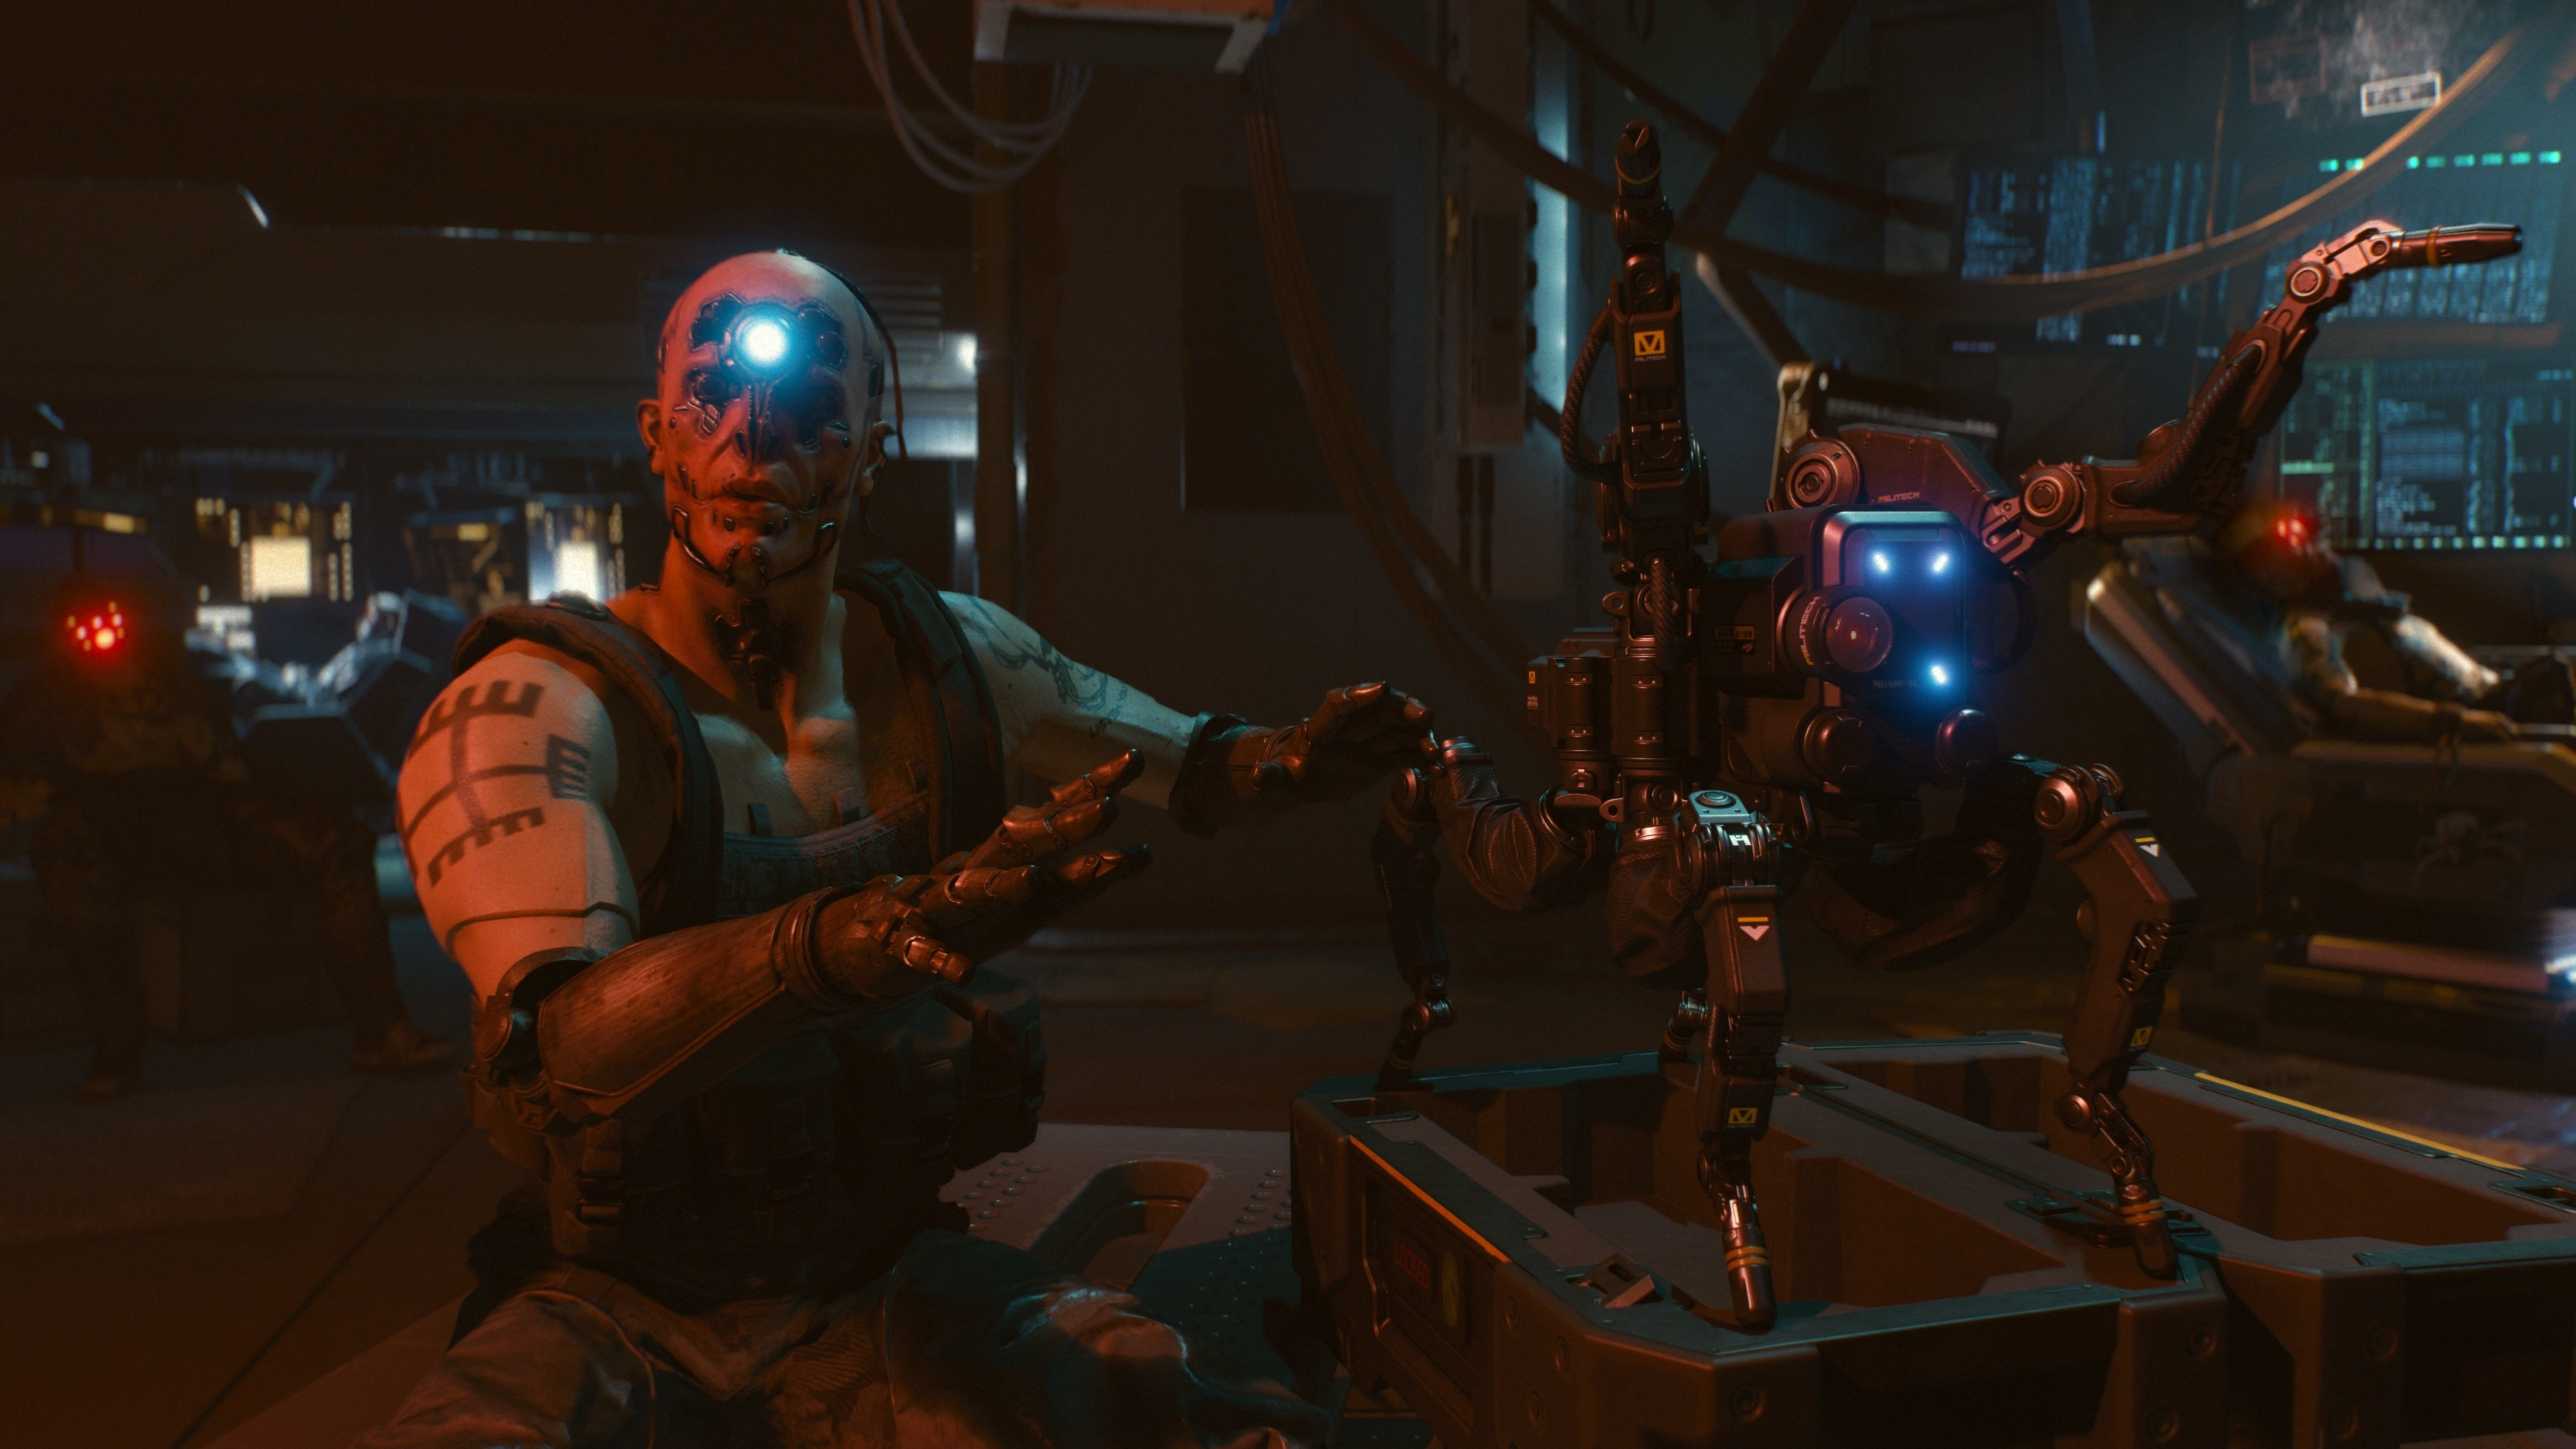 Cyberpunk 2077 Wallpapers, Pictures, Images